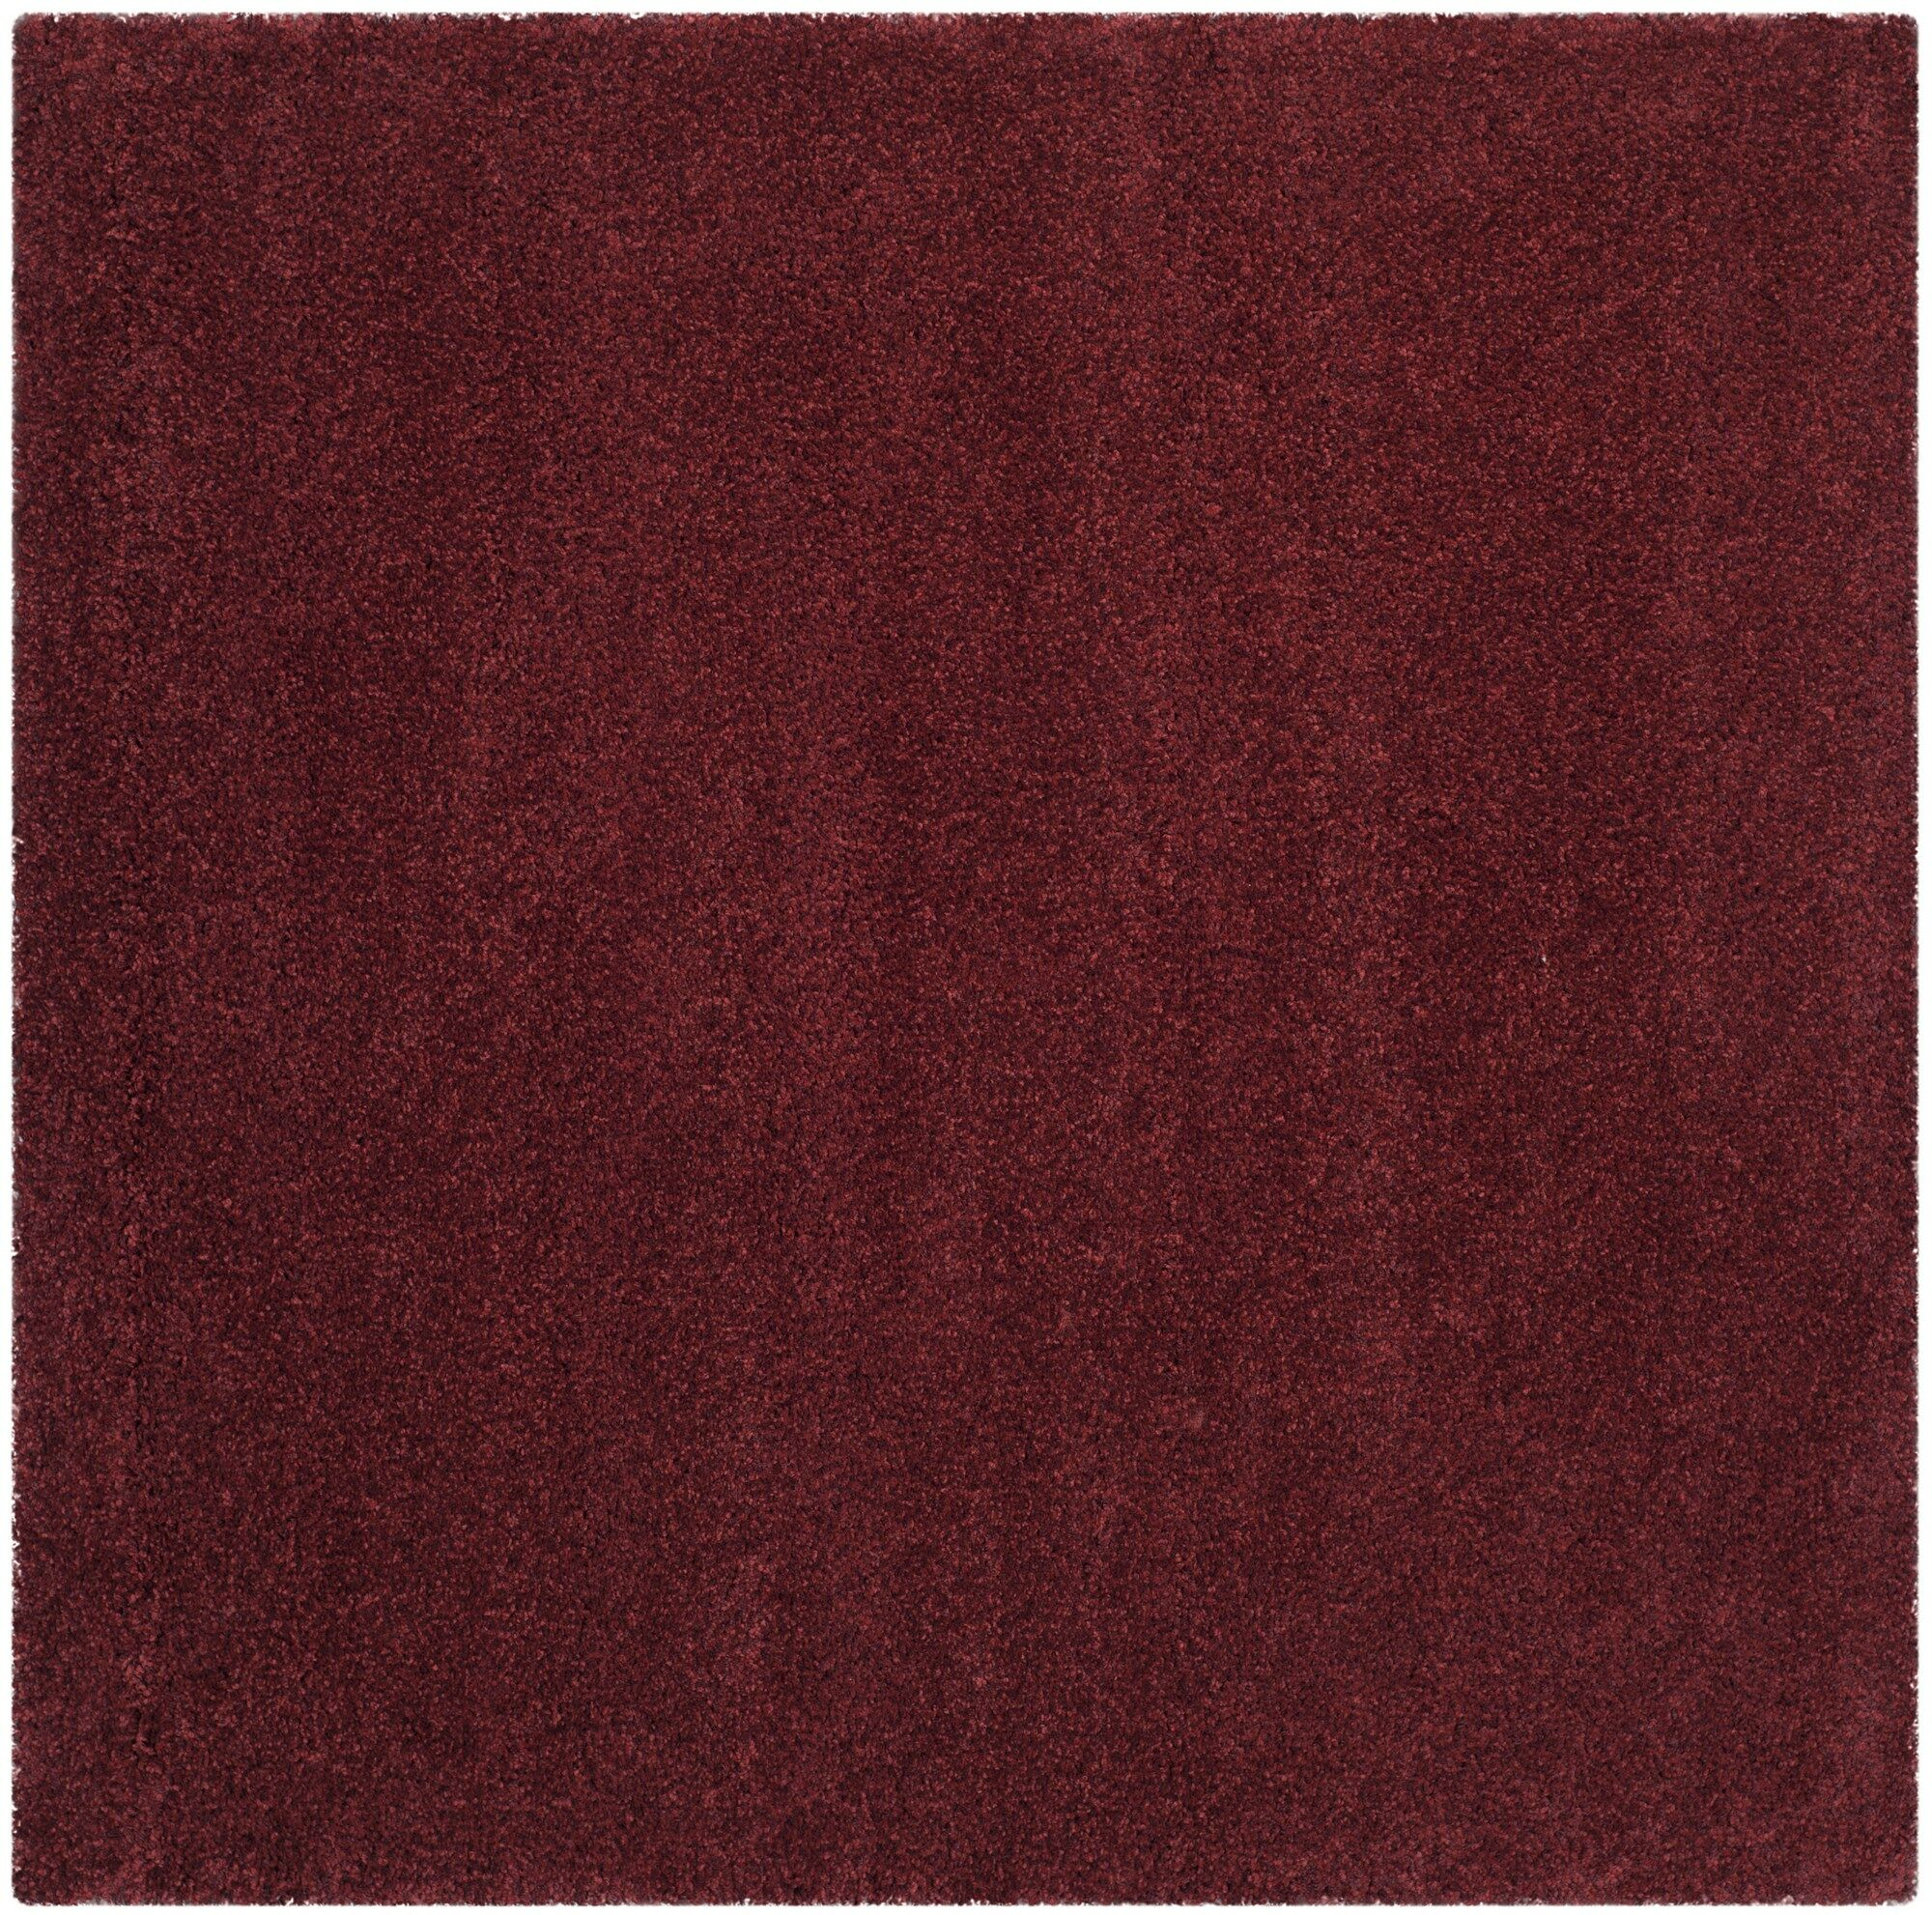 Psyche Shag Maroon Area Rug Rug Size: Square 6'7